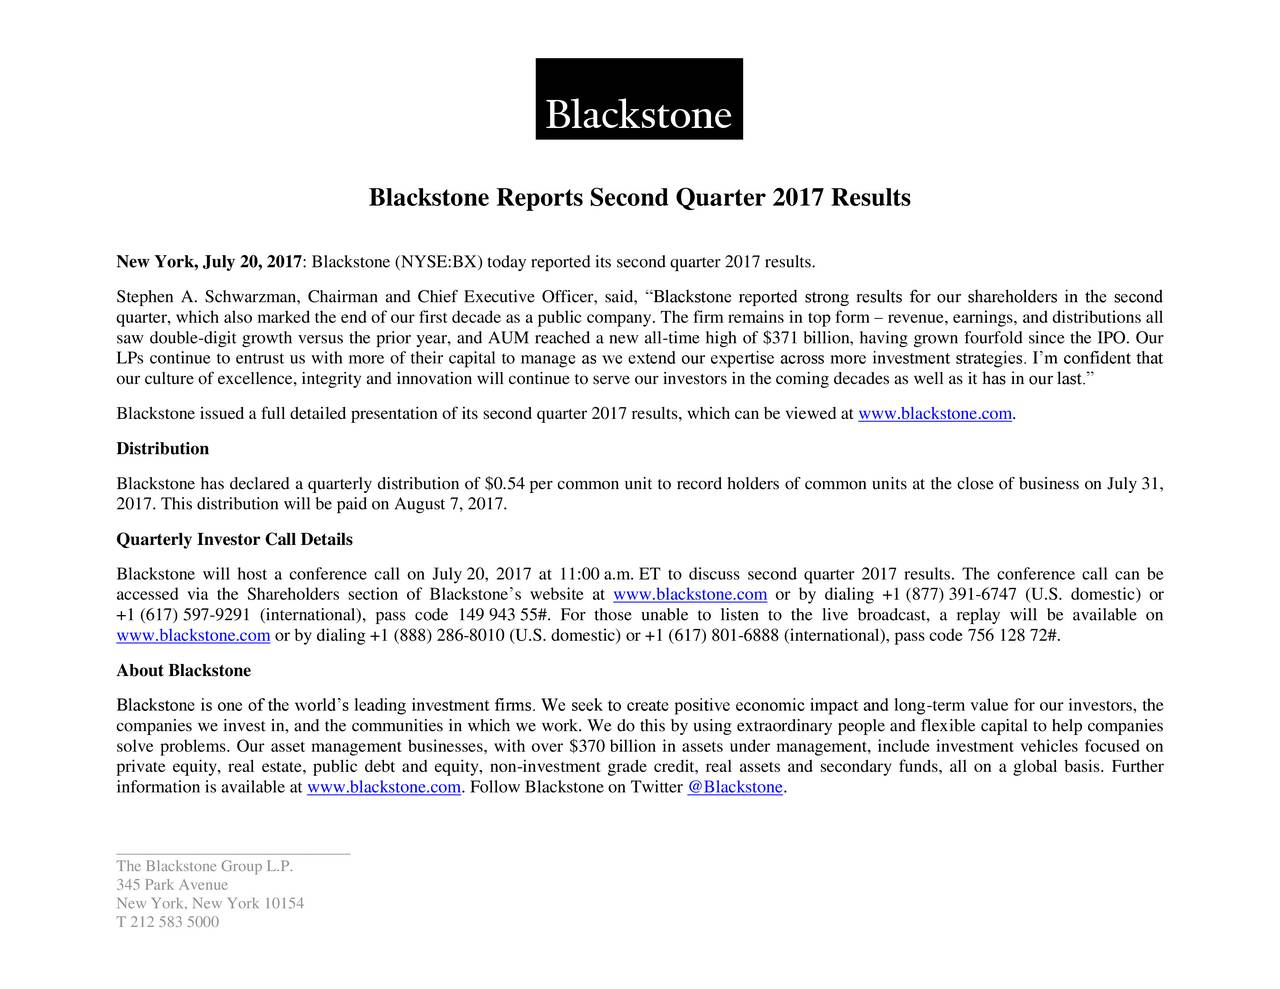 New York, July 20, 2017: Blackstone (NYSE:BX) today reported its second quarter 2017 results. Stephen A. Schwarzman, Chairman and Chief Executive Officer, said, Blackstone reported strong results for our shareholders in the second quarter, which also marked the end of our first decade as a public company. The firm remains in top form  revenue, earnings, and distributions all saw double-digit growth versus the prior year, and AUM reached a new all-time high of $371 billion, having grown fourfold since the IPO. Our LPs continue to entrust us with more of their capital to manage as we extend our expertise across more investment strategies. Im confident that our culture of excellence, integrity and innovation will continue to serve our investors in the coming decades as well as it has in our last. Blackstone issued a full detailed presentation of its second quarter 2017 results, which can be viewed at www.bckstone.com. Distribution Blackstone has declared a quarterly distribution of $0.54 per common unit to record holders of common units at the close of business on July 31, 2017. This distribution will be paid on August 7, 2017. Quarterly Investor Call Details Blackstone will host a conference call on July 20, 2017 at 11:00 a.m. ET to discuss second quarter 2017 results. The conference call can be accessed via the Shareholders section of Blackstones website at www.blackstone.com or by dialing +1 (877) 391-6747 (U.S. domestic) or +1 (617) 597-9291 (international), pass code 149 943 55#. For those unable to listen to the live broadcast, a replay will be available on www.blackstone.com or by dialing +1 (888) 286-8010 (U.S. domestic) or +1 (617) 801-6888 (international), pass code 756 128 72#. About Blackstone Blackstone is one of the worlds leading investment firms. We seek to create positive economic impact and long-term value for our investors, the companies we invest in, and the communities in which we work. We do this by using extraordinary people and flexible capital 